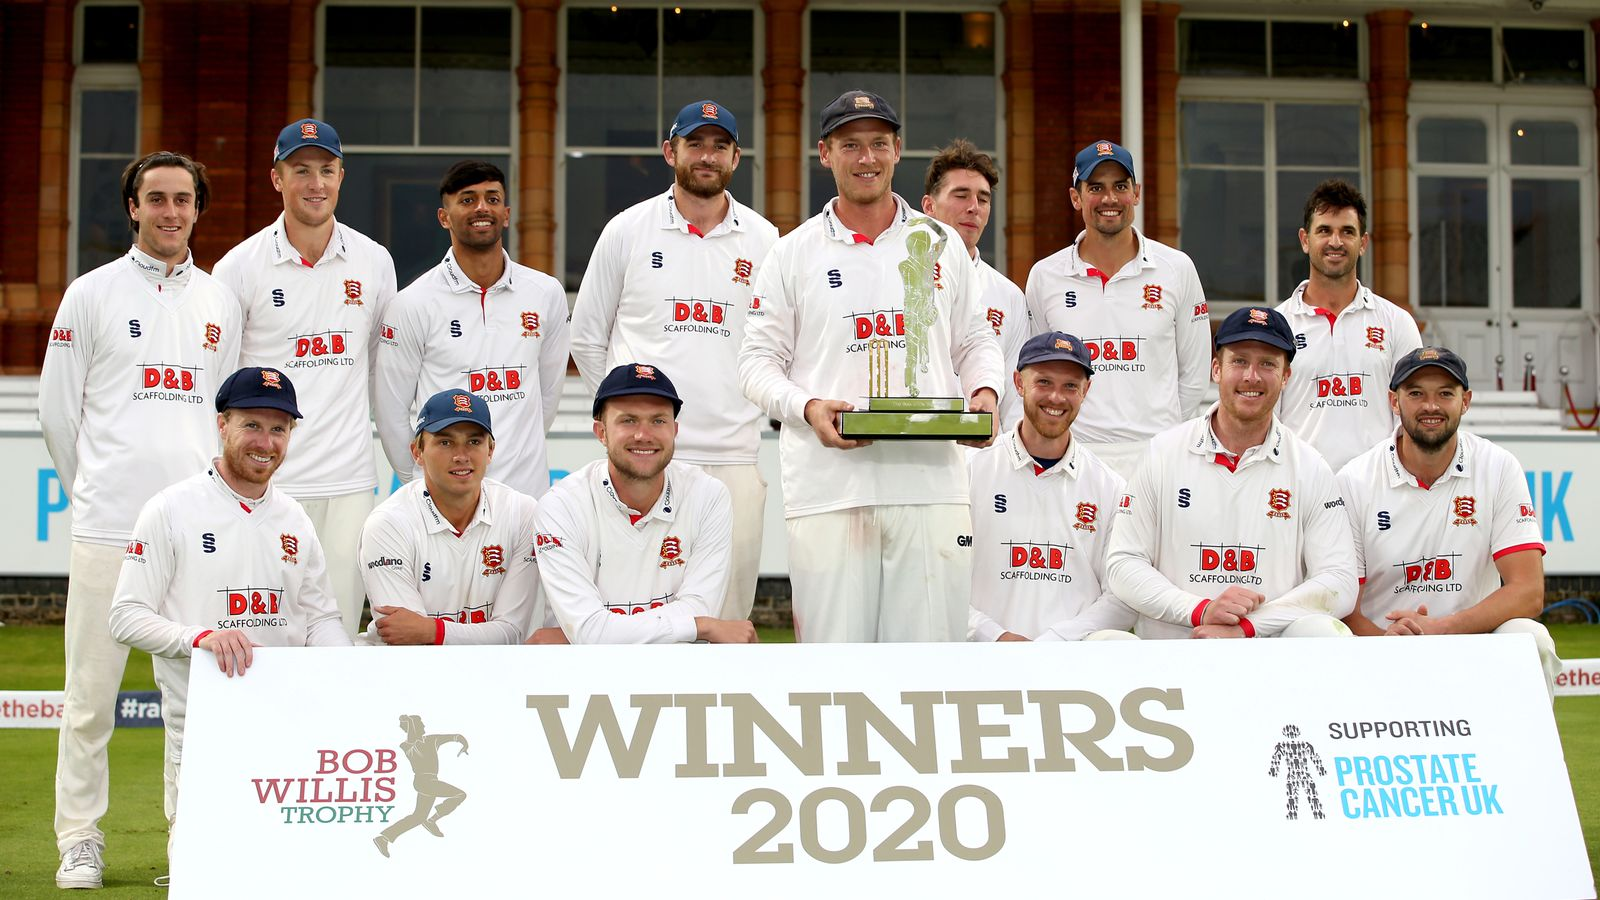 County Championship preview - Group 1: Can Essex make it three title wins in a row?